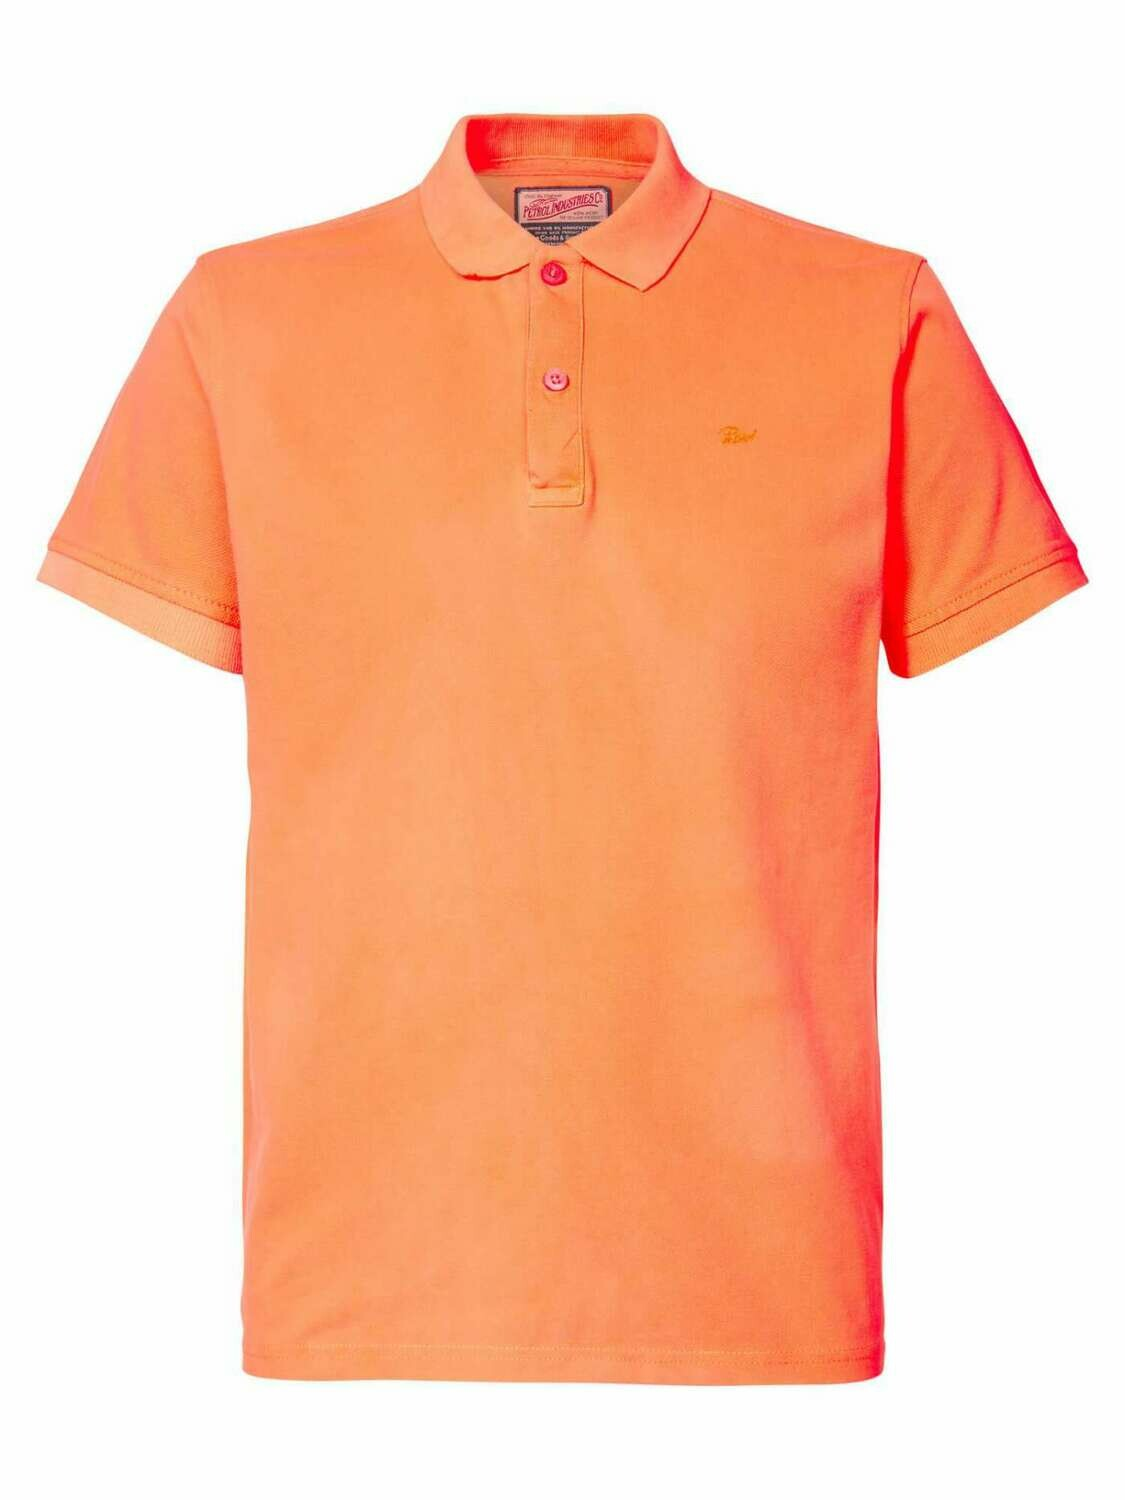 M-1000-POL900 Shocking Orange